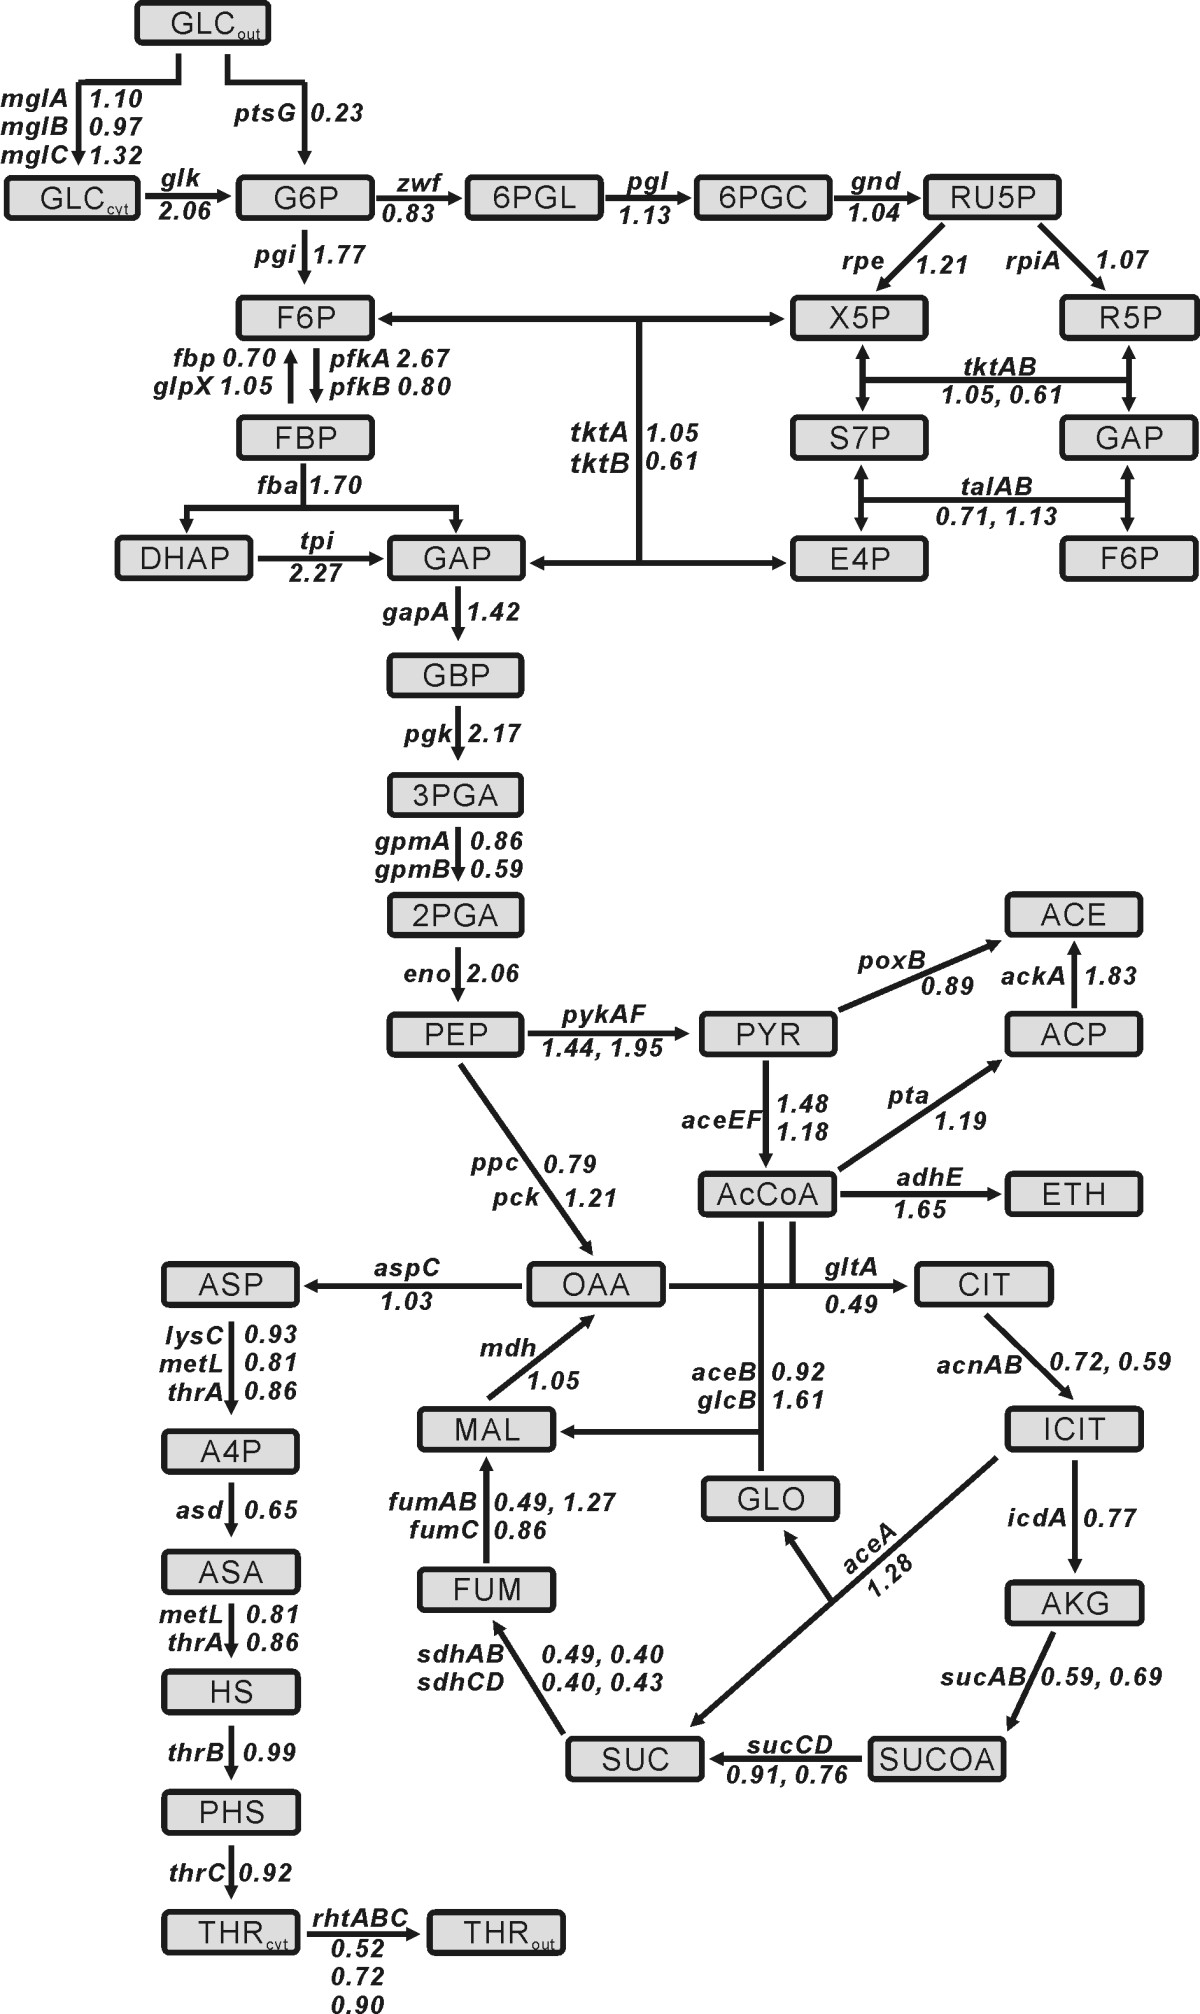 http://static-content.springer.com/image/art%3A10.1186%2F1475-2859-8-2/MediaObjects/12934_2008_Article_322_Fig4_HTML.jpg